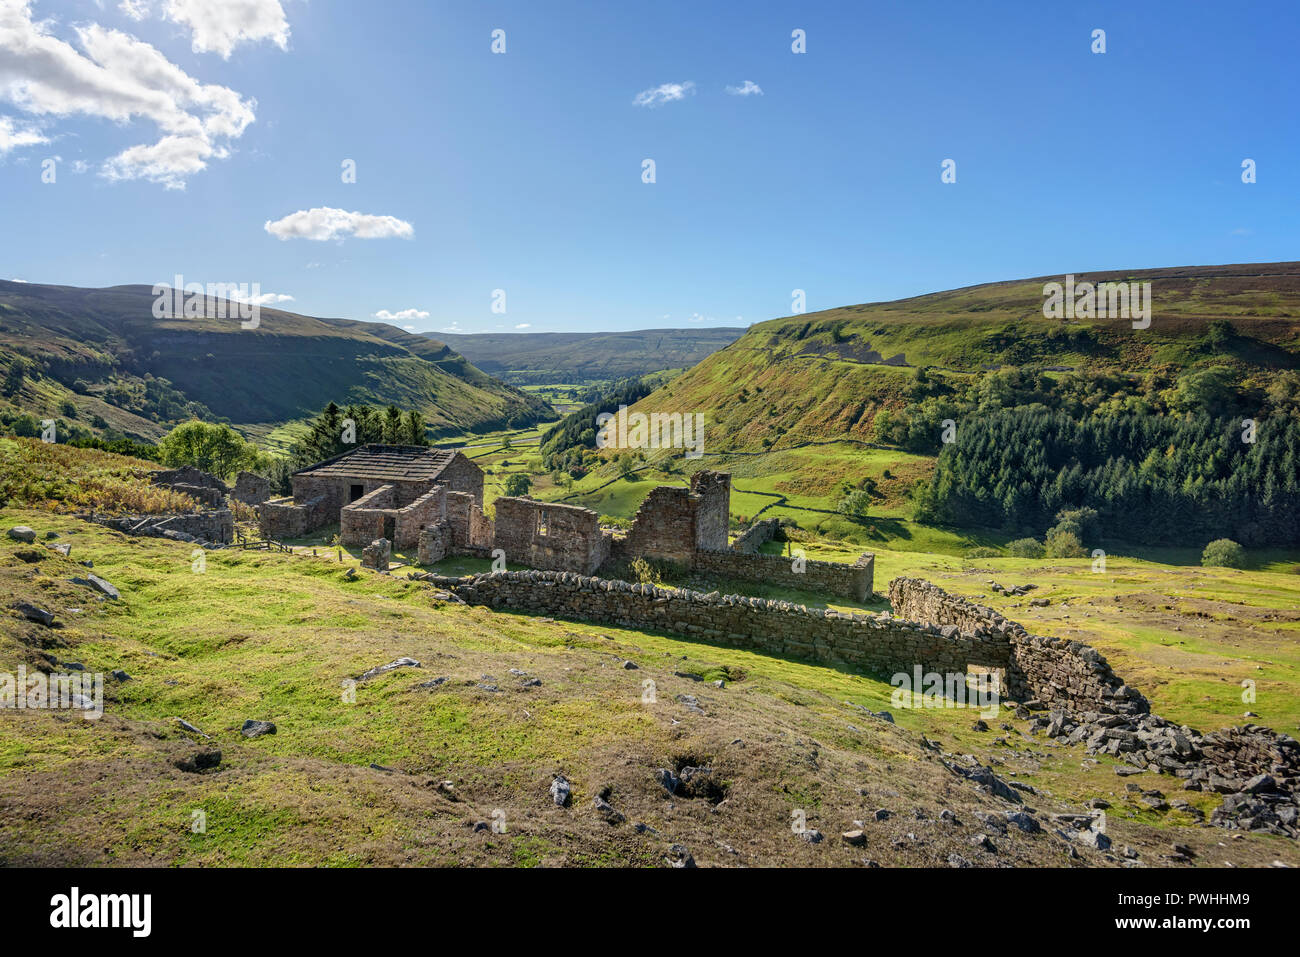 Ruined buildings at Crackpot Hall in Swaledale between Keld and Muker in the Yorjshire Dales - Stock Image